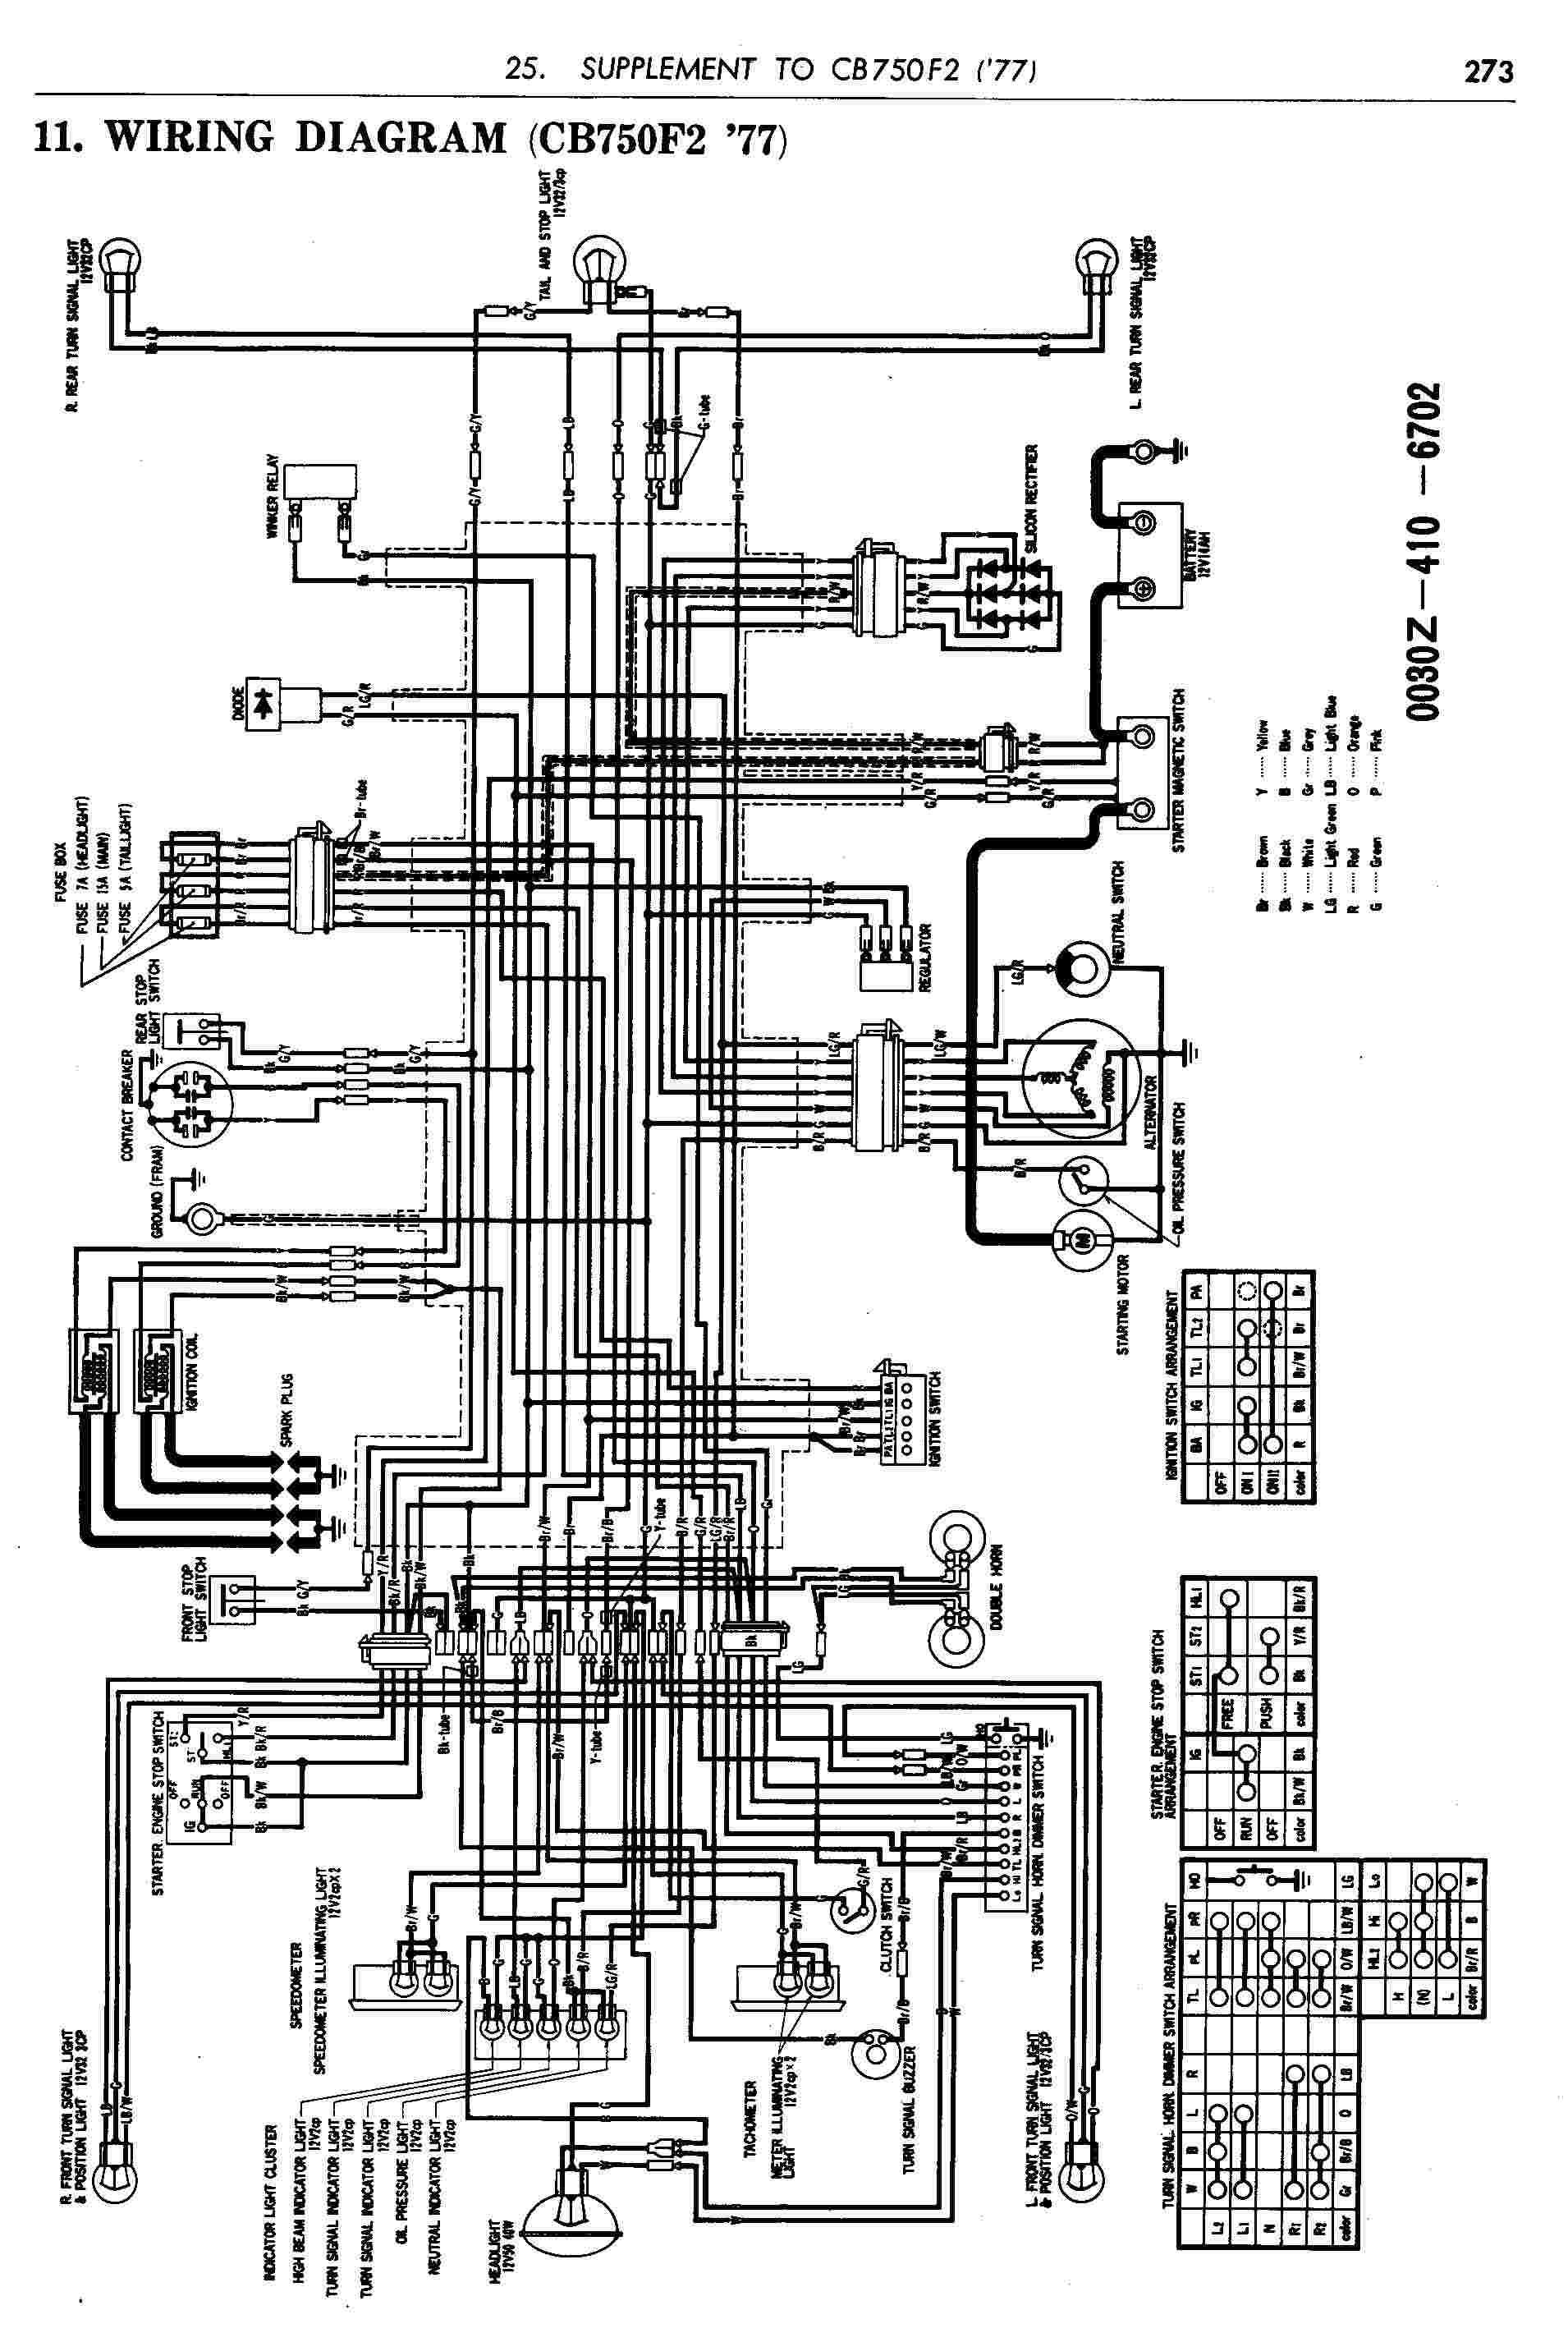 honda cb750k2 us wiring diagrams k7